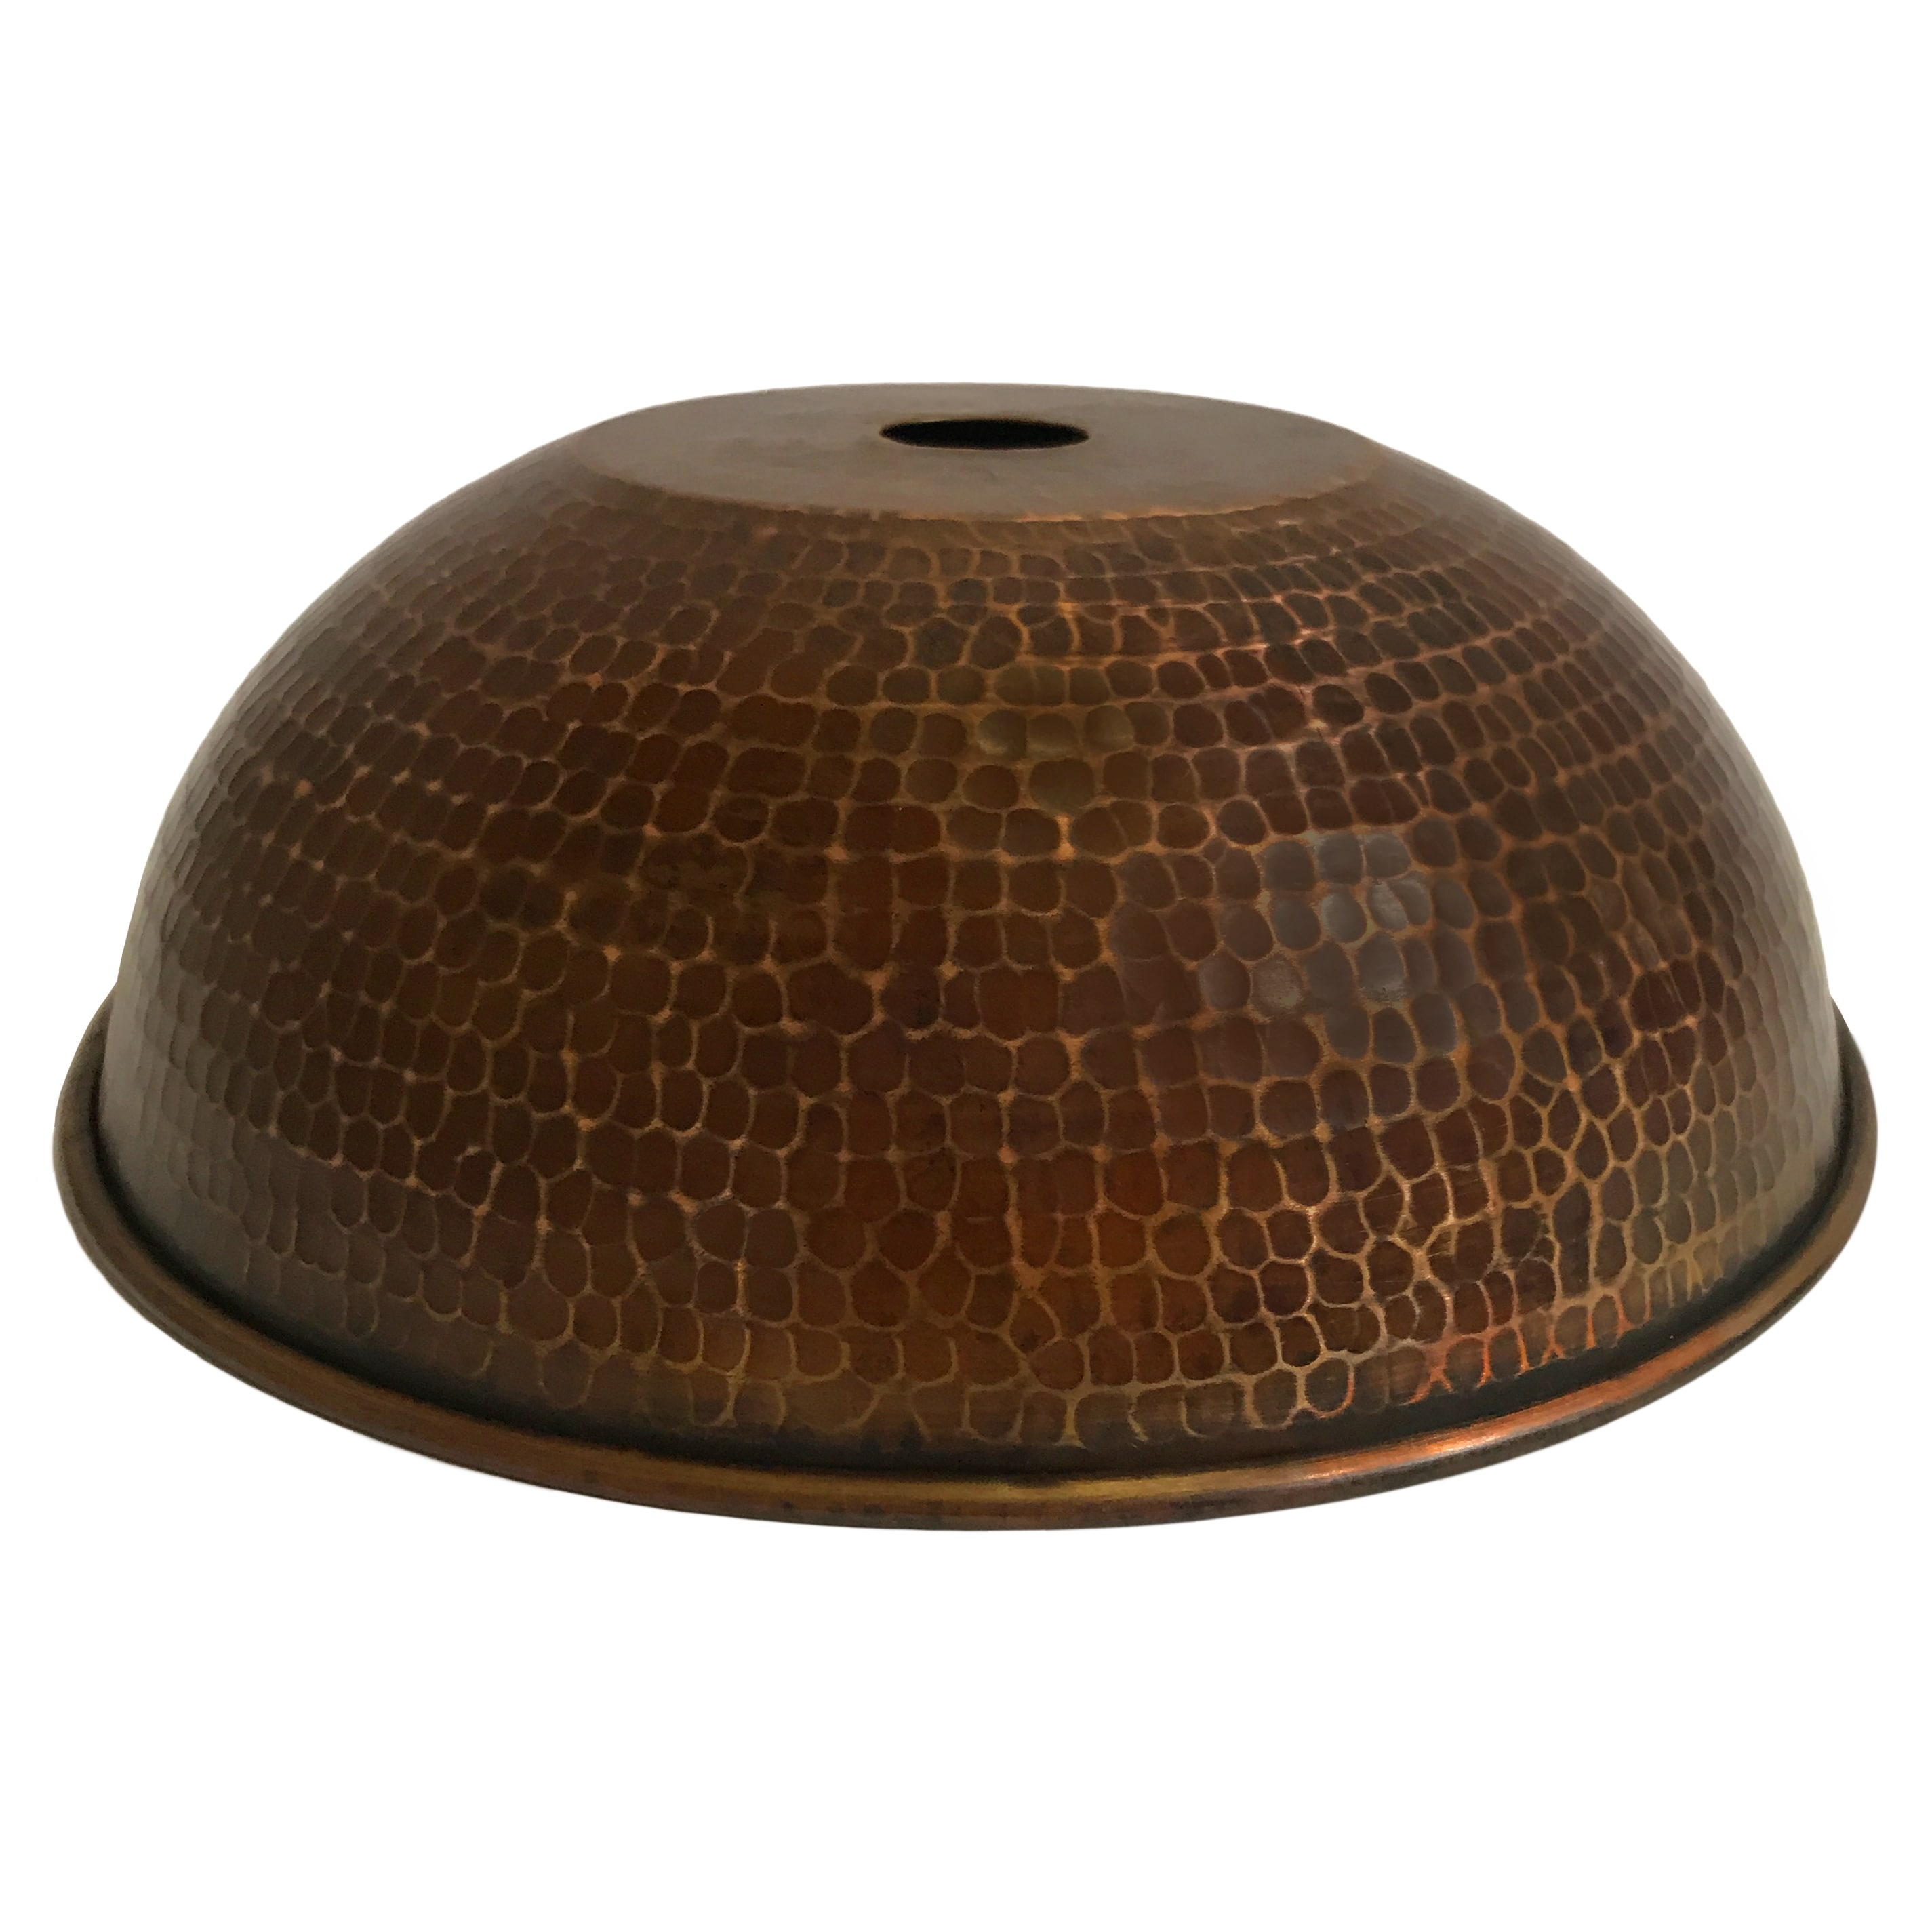 glory grace home pendant light concrete dome